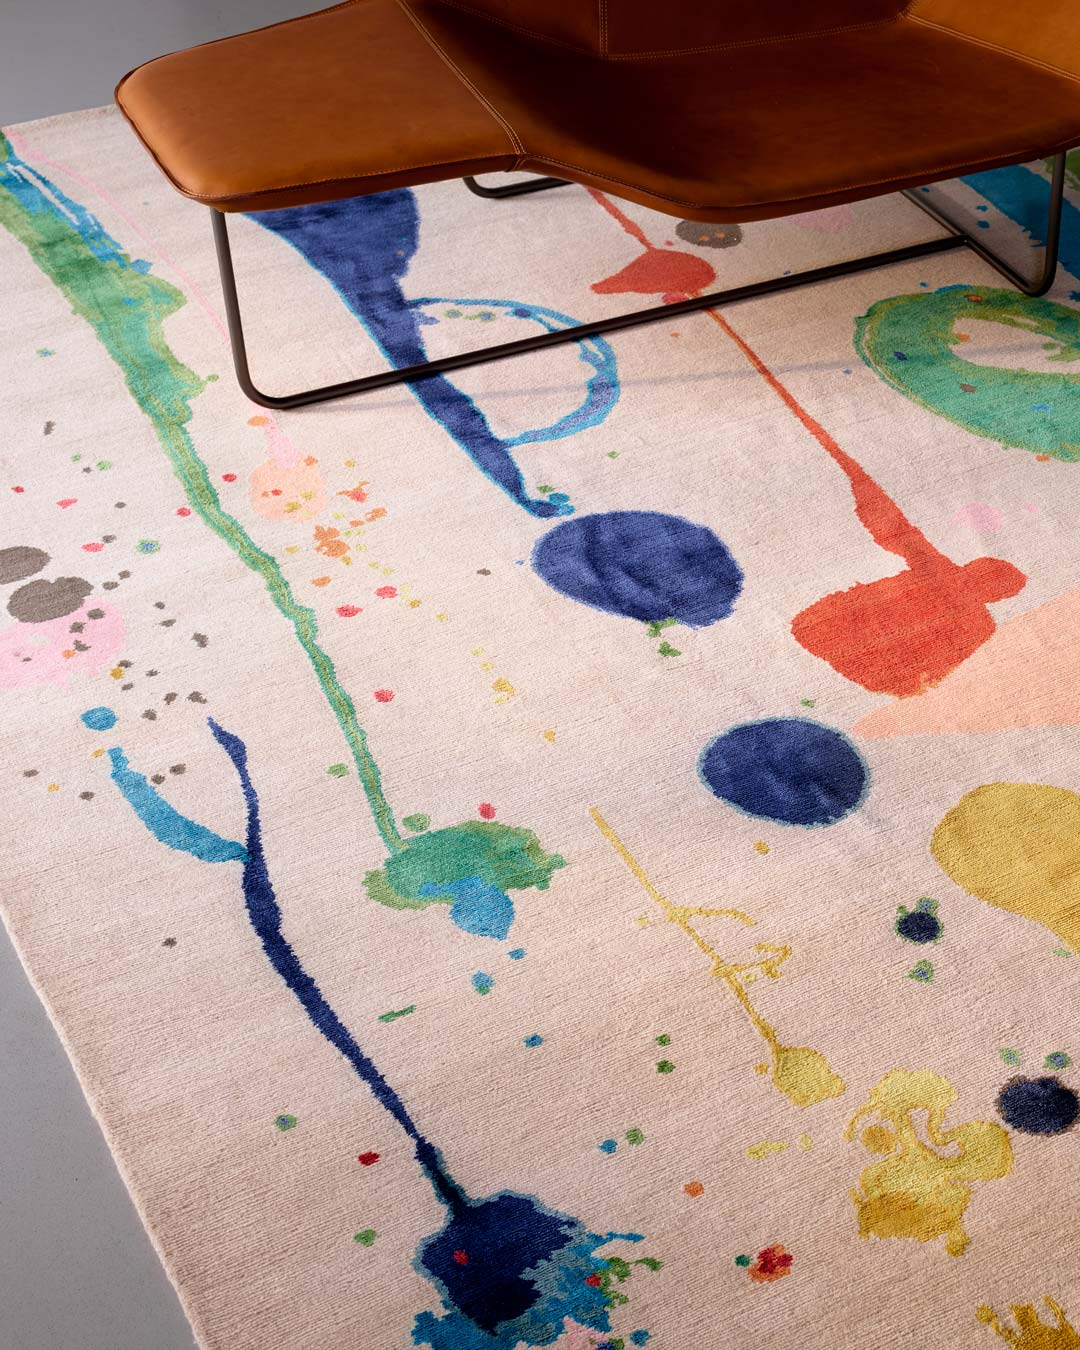 Close up image of painterly Dream Garden rug by Louise Olsen